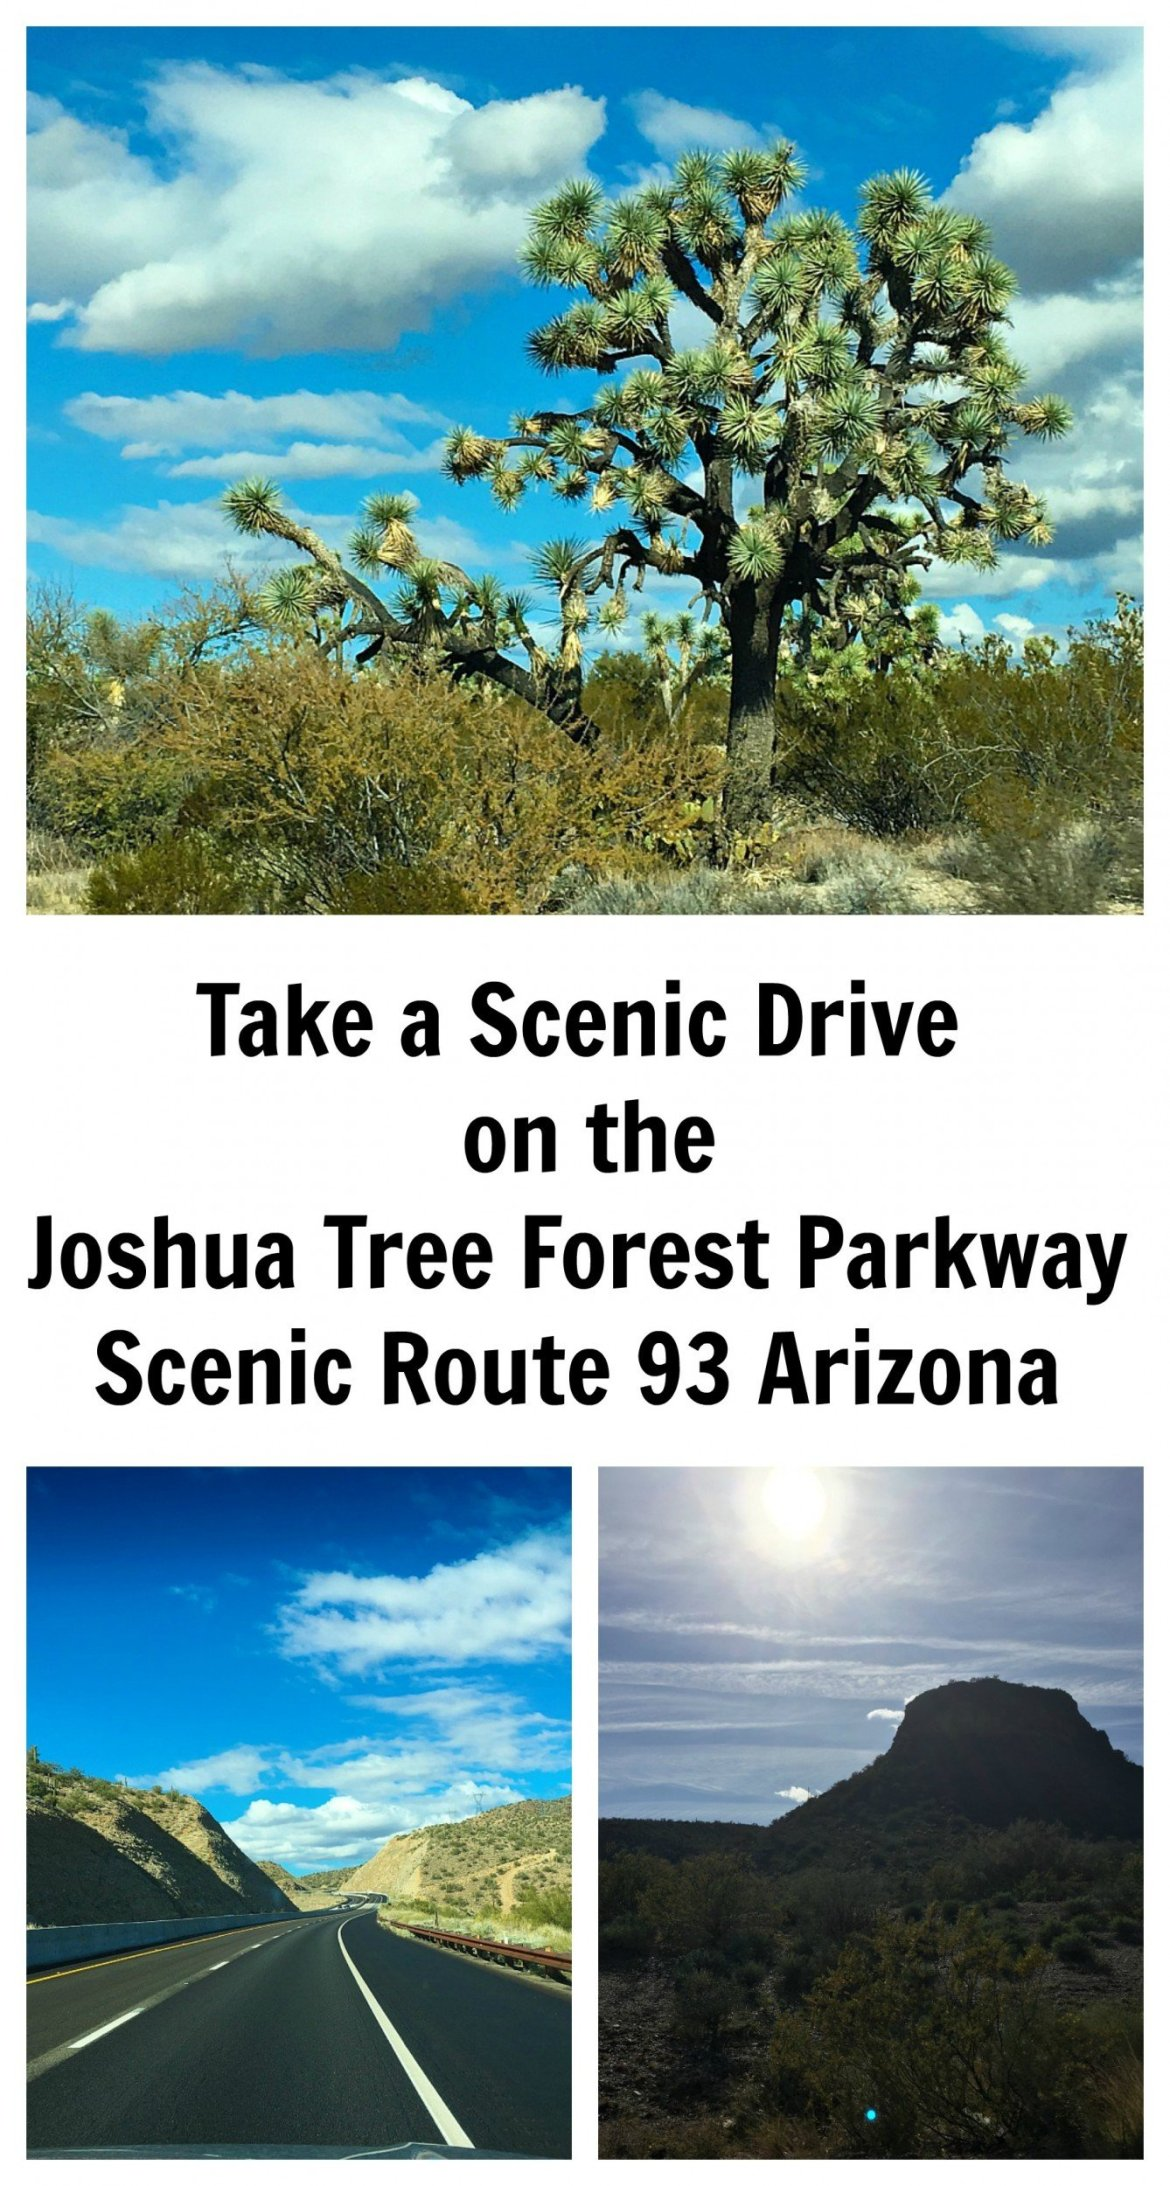 Take a drive on one of the most beautiful scenic drives in Arizona, along the Joshua Tree Forest Parkway, Scenic Route 93